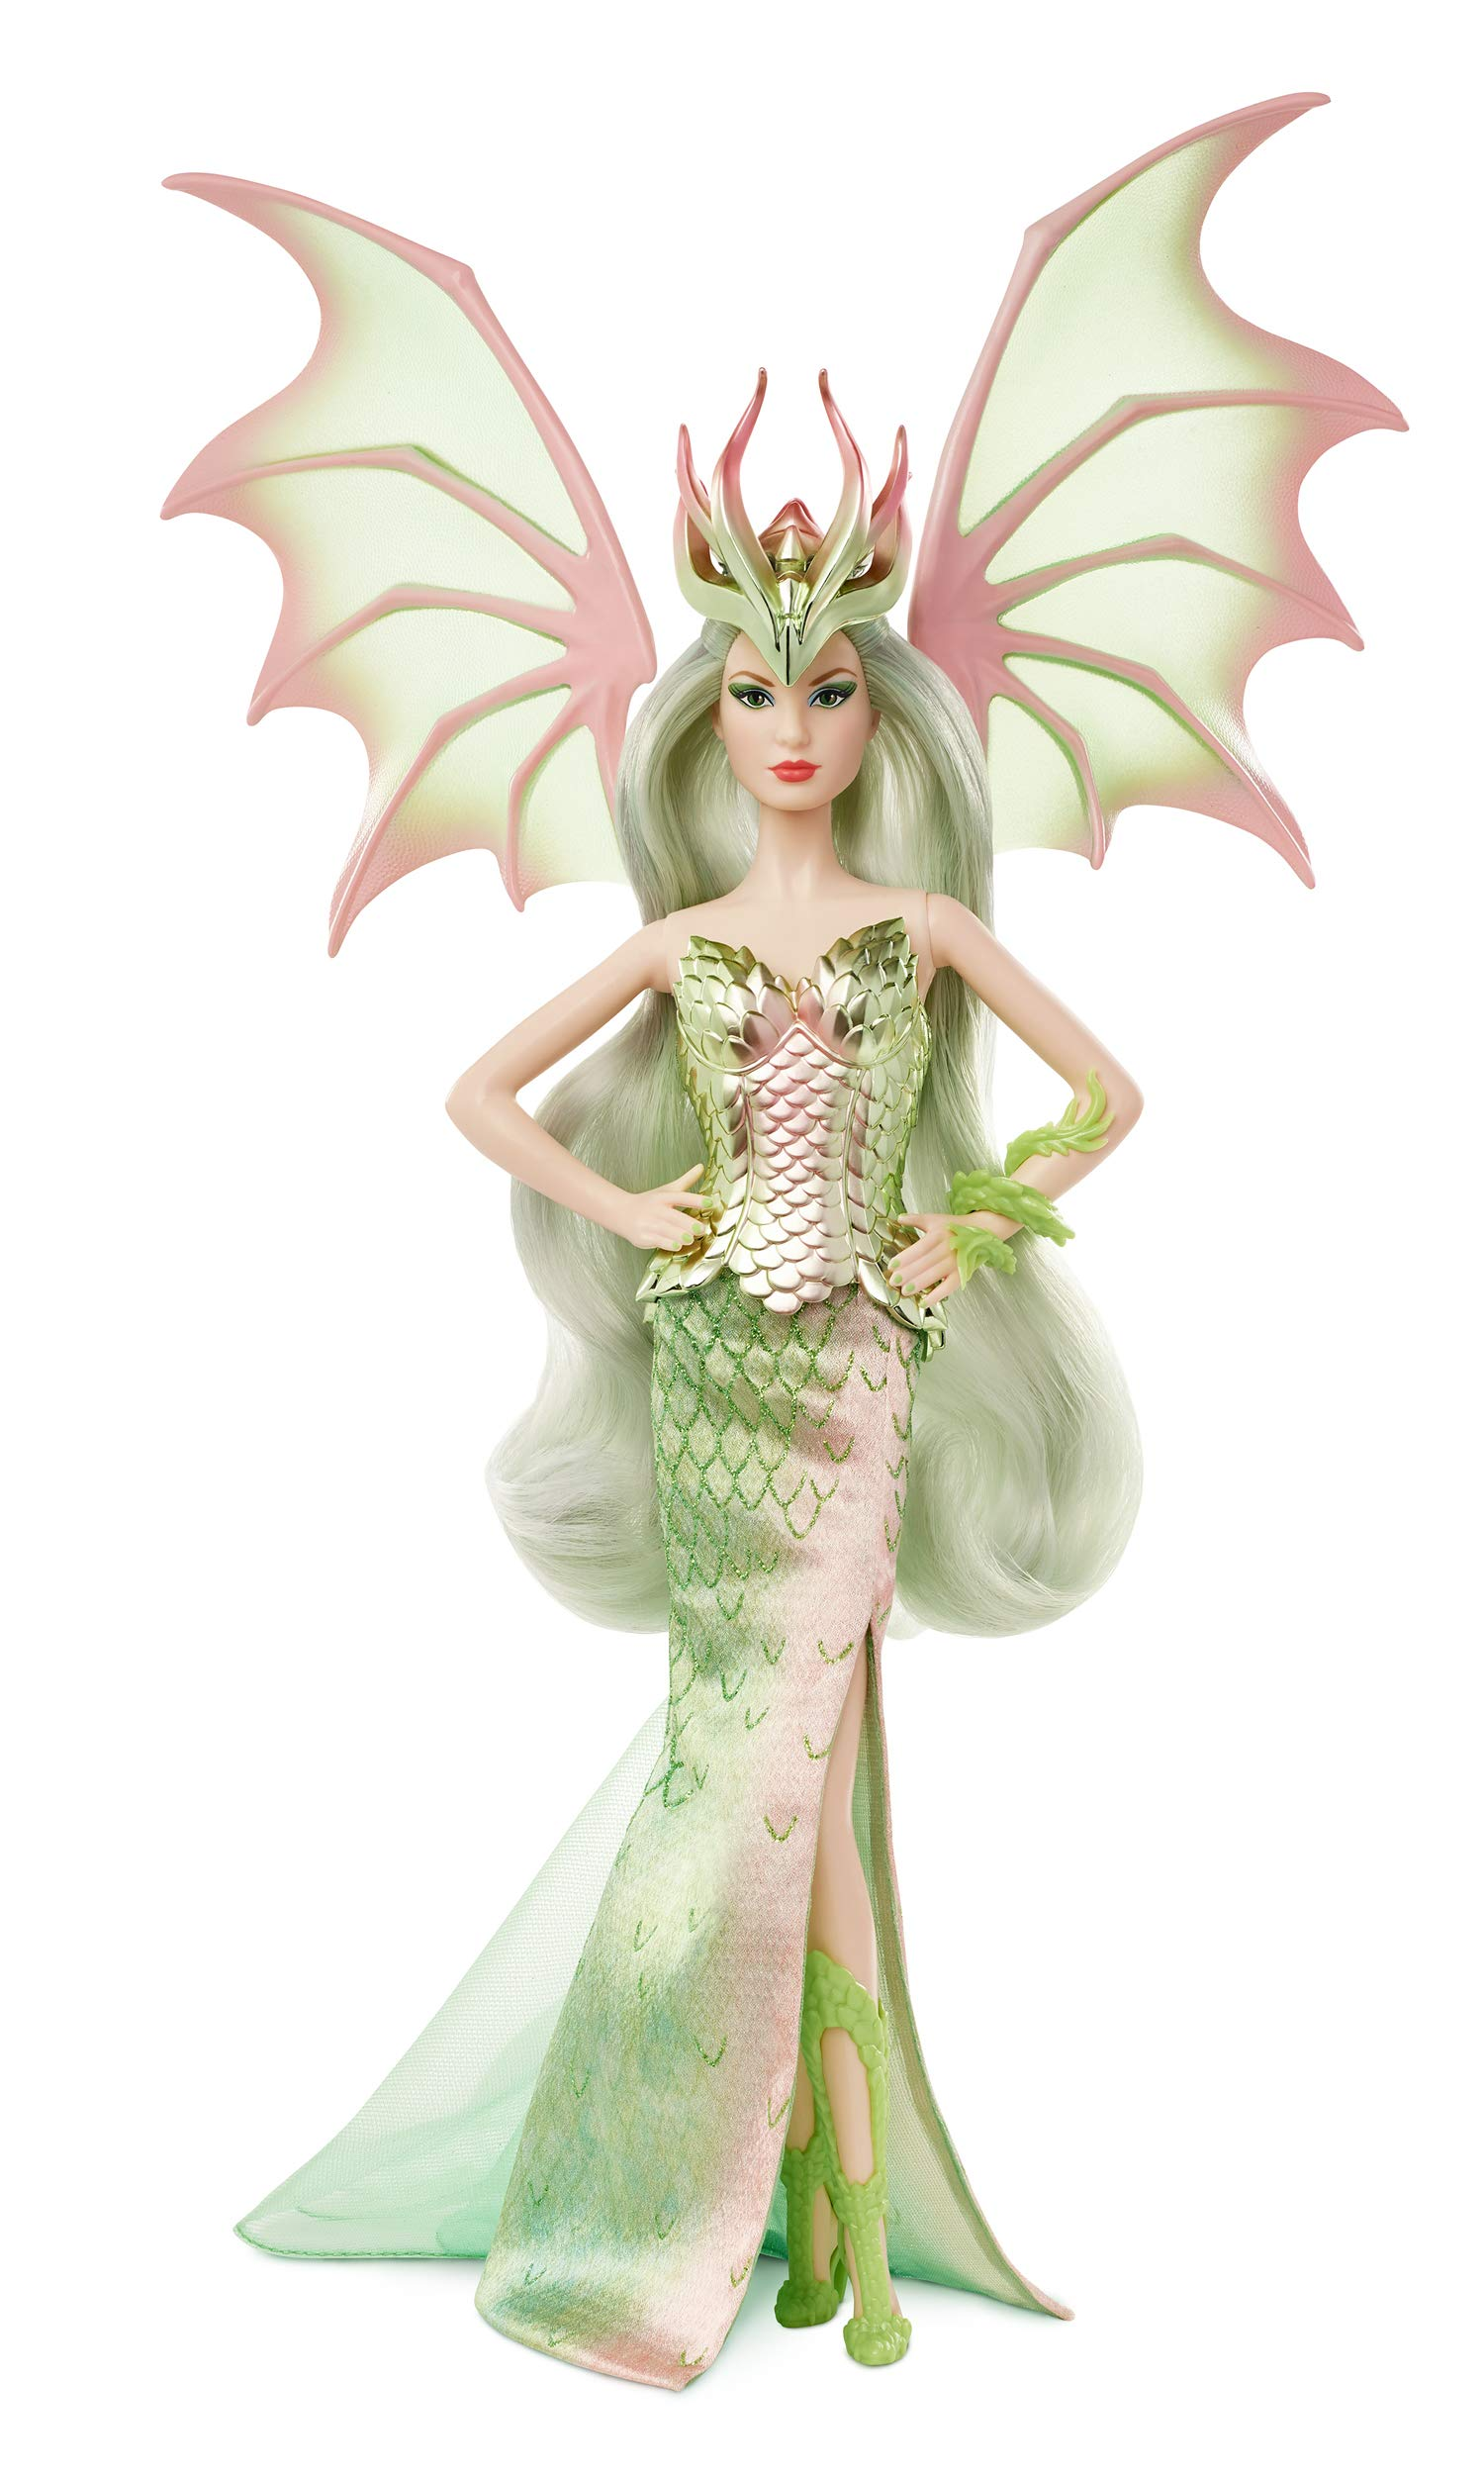 Barbie Signature Mythical Muse Fantasy Dragon Empress Doll, 15-in, Collectible, with Pastel-Colored Hair and Wings